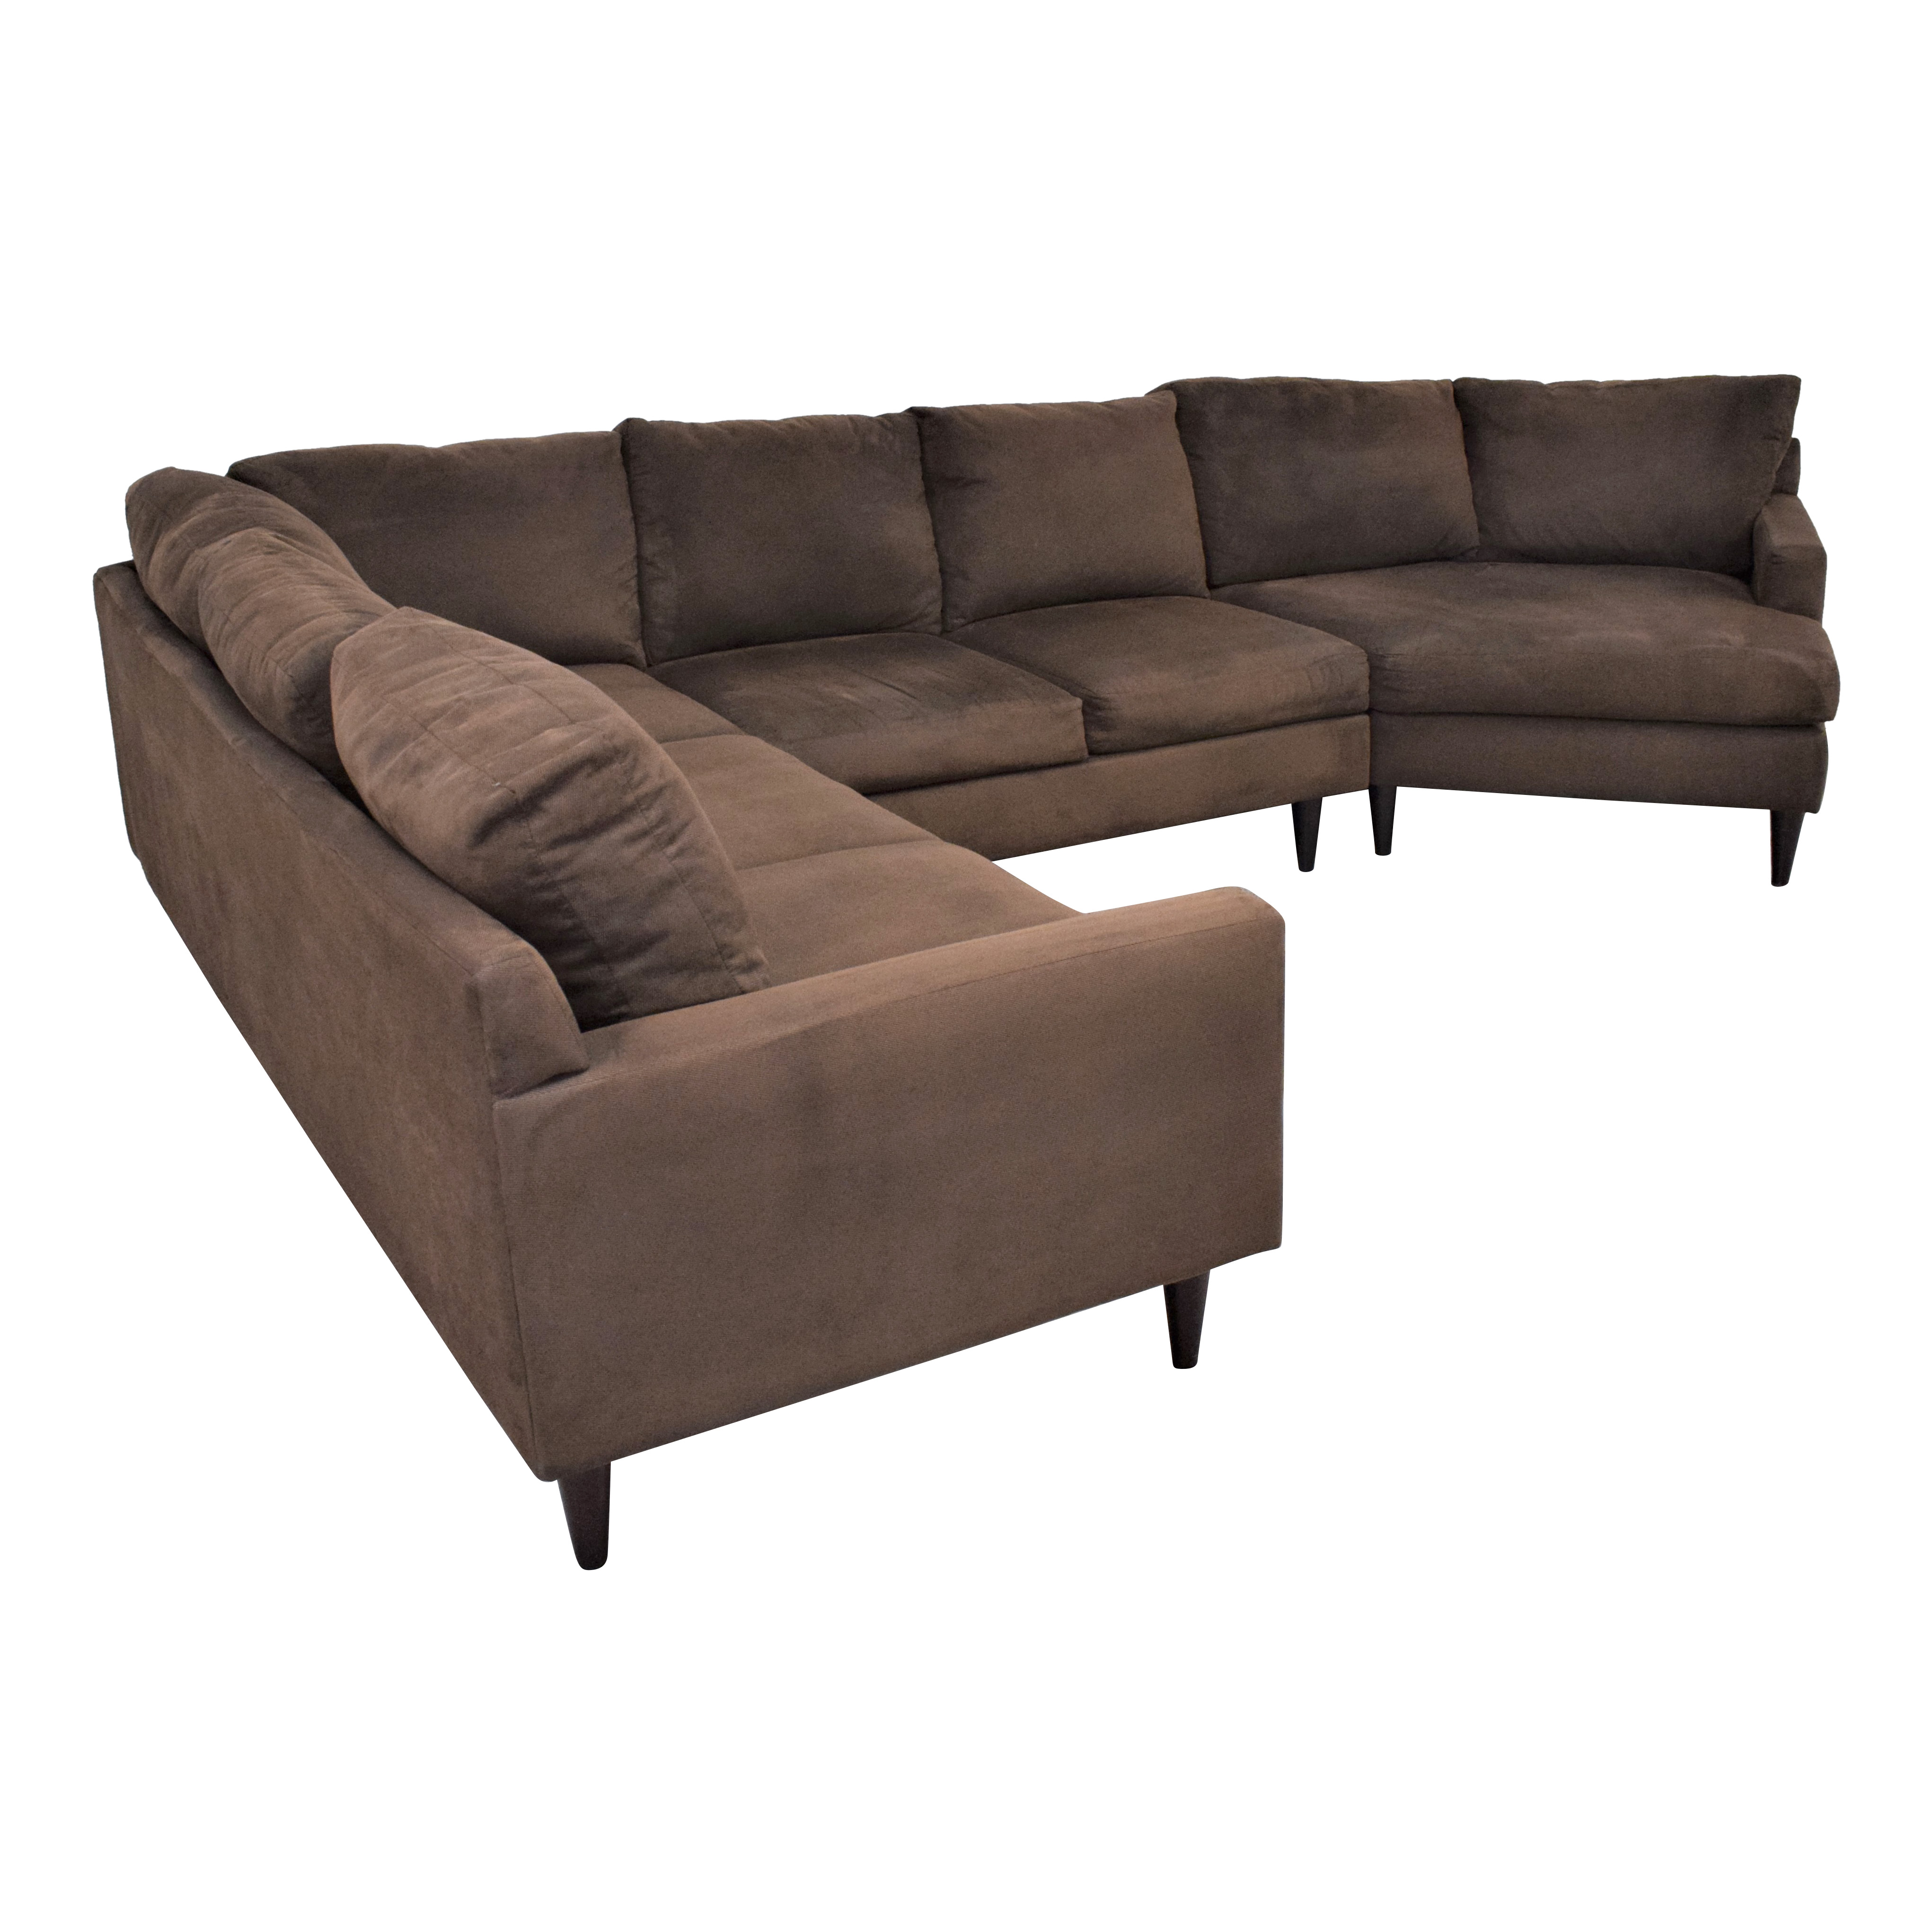 Max Home Max Home Cuddler Sectional Sofa coupon